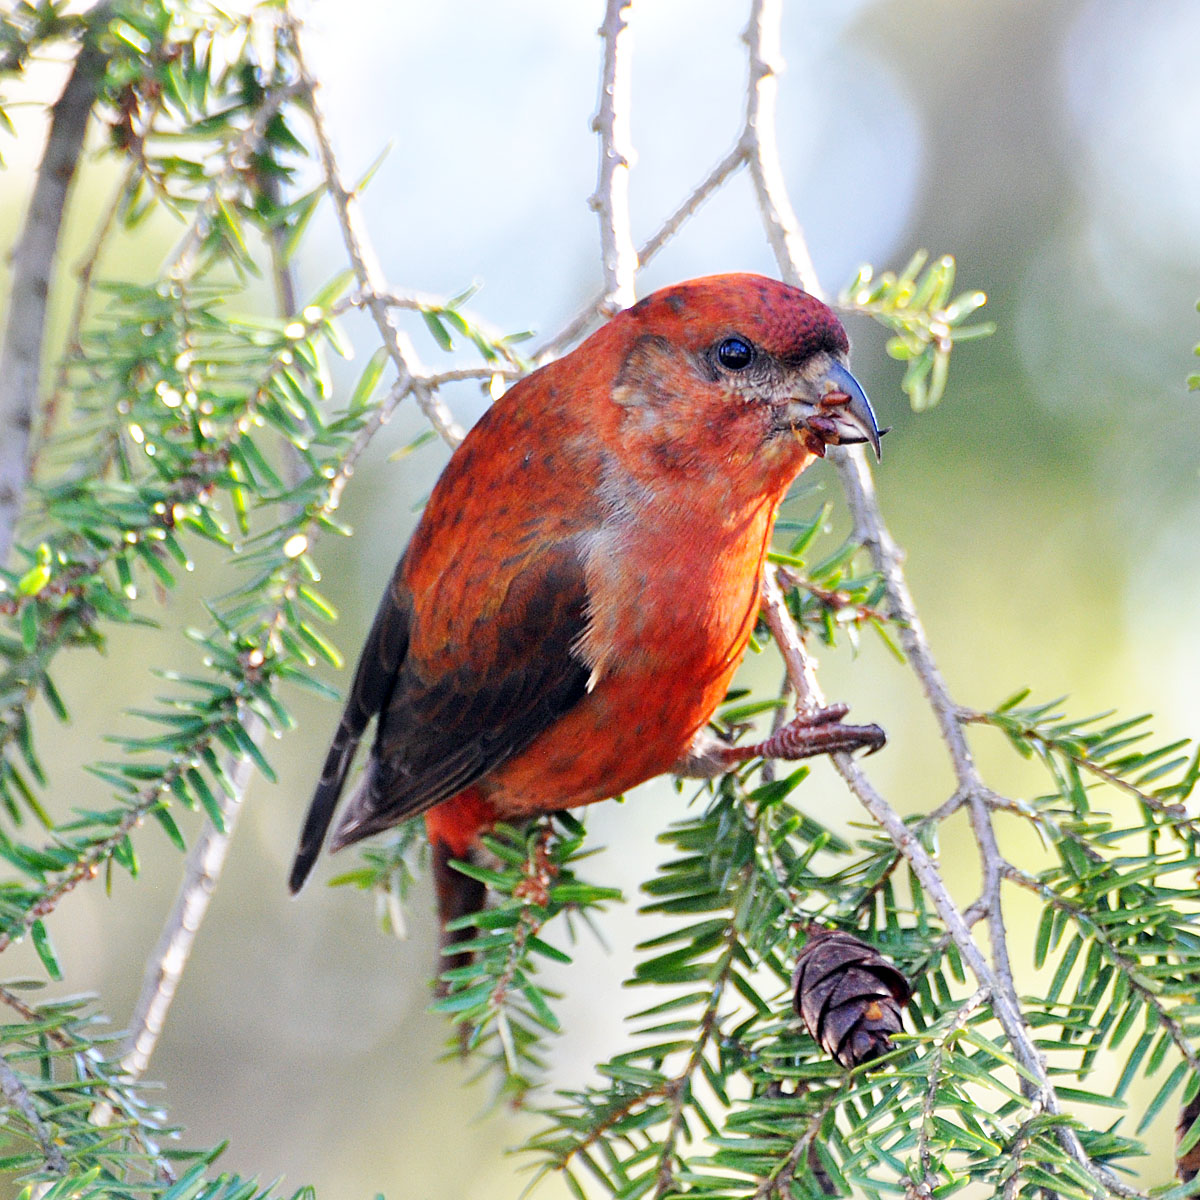 """- Red Crossbill (Loxia curvirostra)Red Crossbills live in coniferous forests. Their diet includes seeds, berries, buds, and minerals such as salt. Red Crossbills sing a metallic """"twee-twee-twee-twee twup -twin-a-twin-a."""" They are protected on the US Migratory Bird list.Photo Credits: Don Faulkner"""